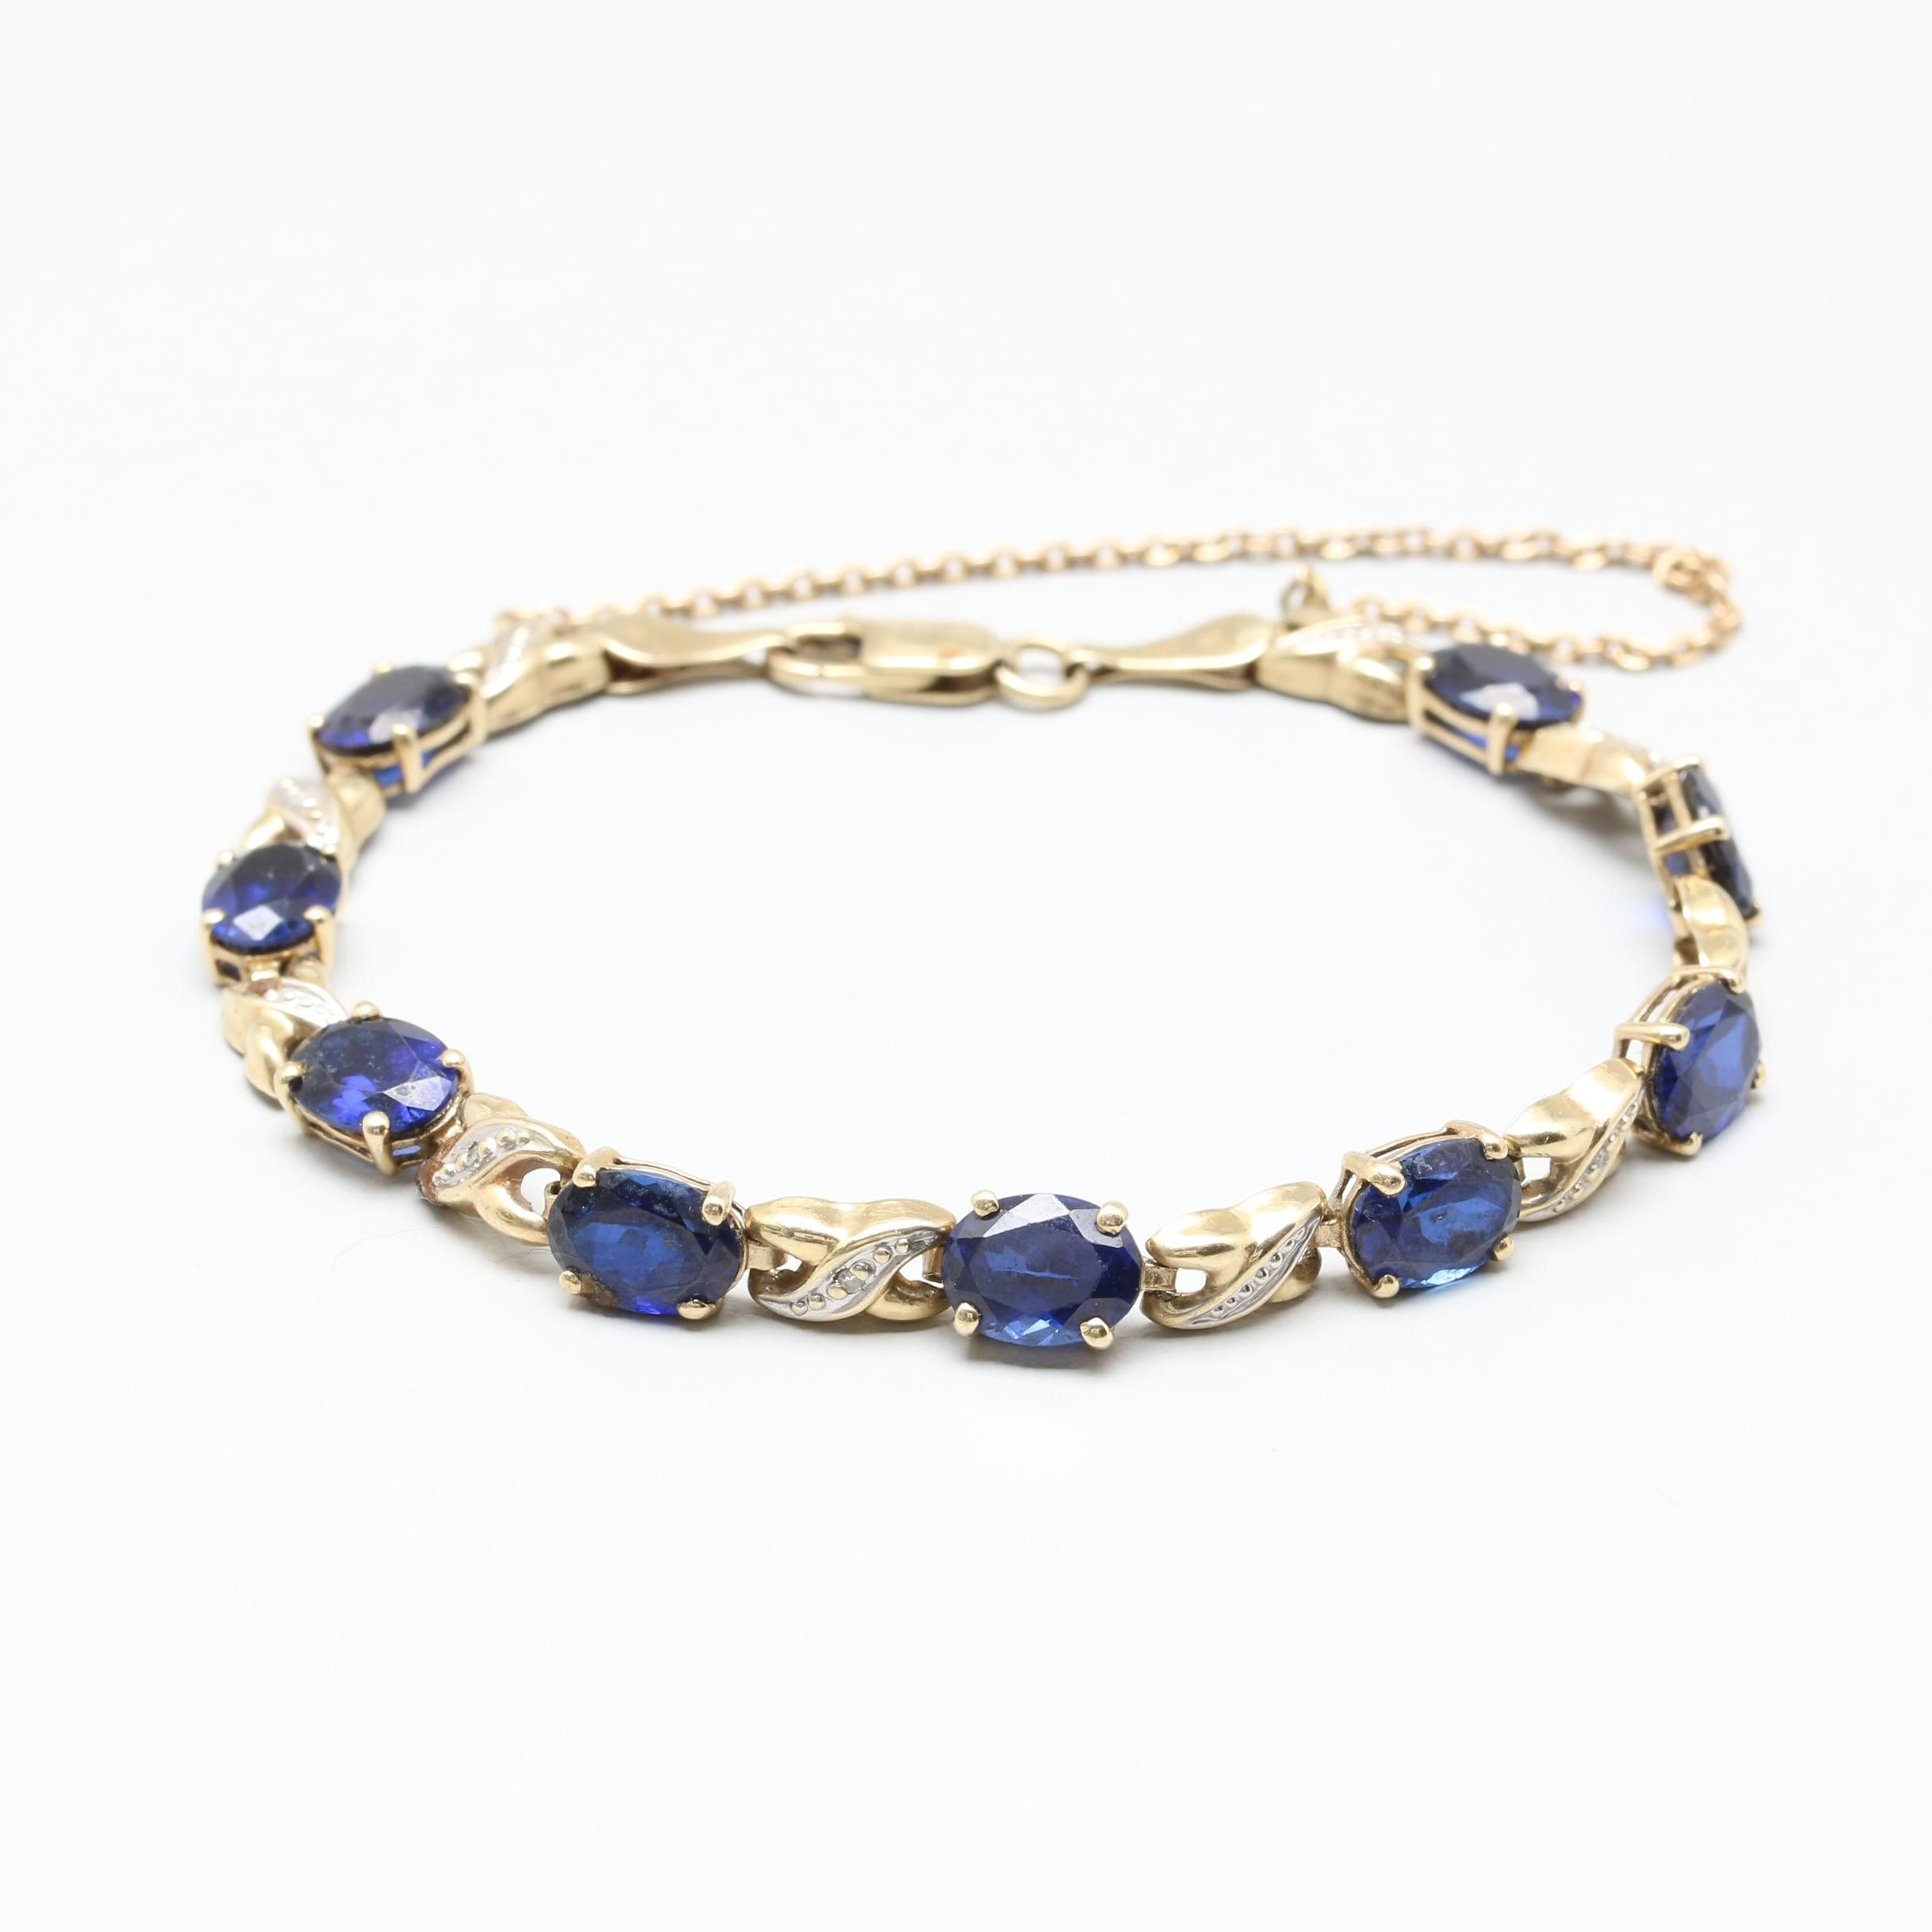 10K and 14K Yellow and White Gold Synthetic Sapphire and Diamond Bracelet